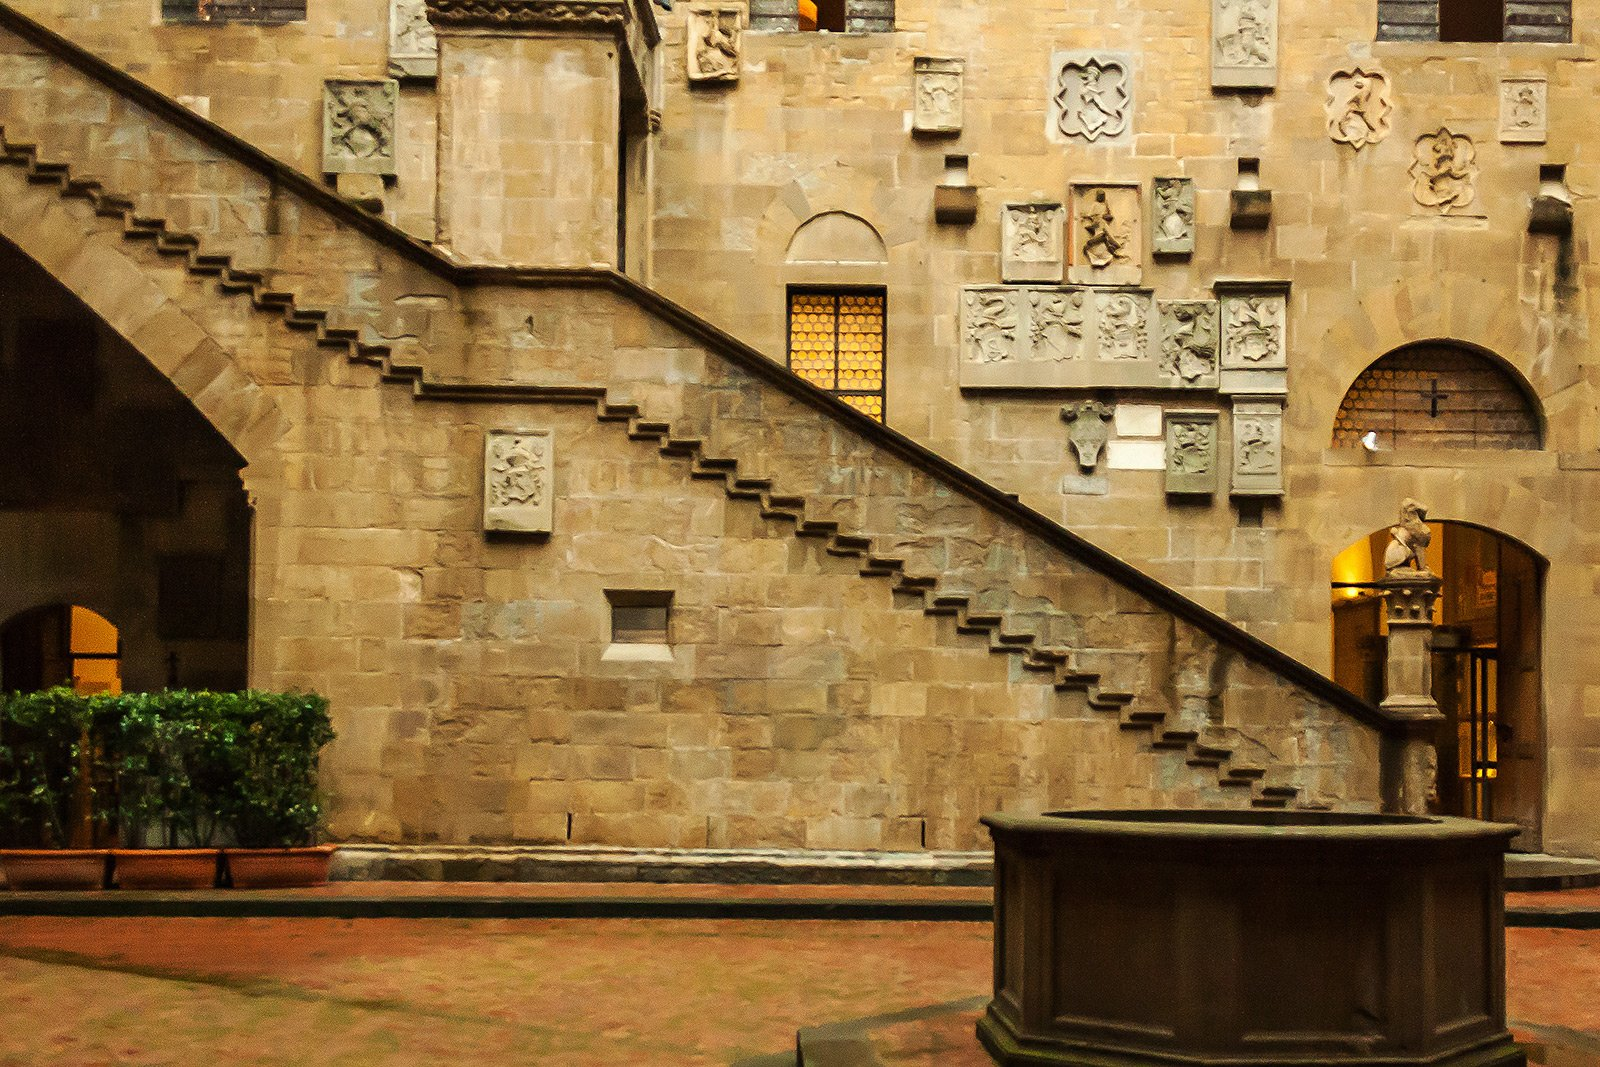 National Museum of Bargello, Florence